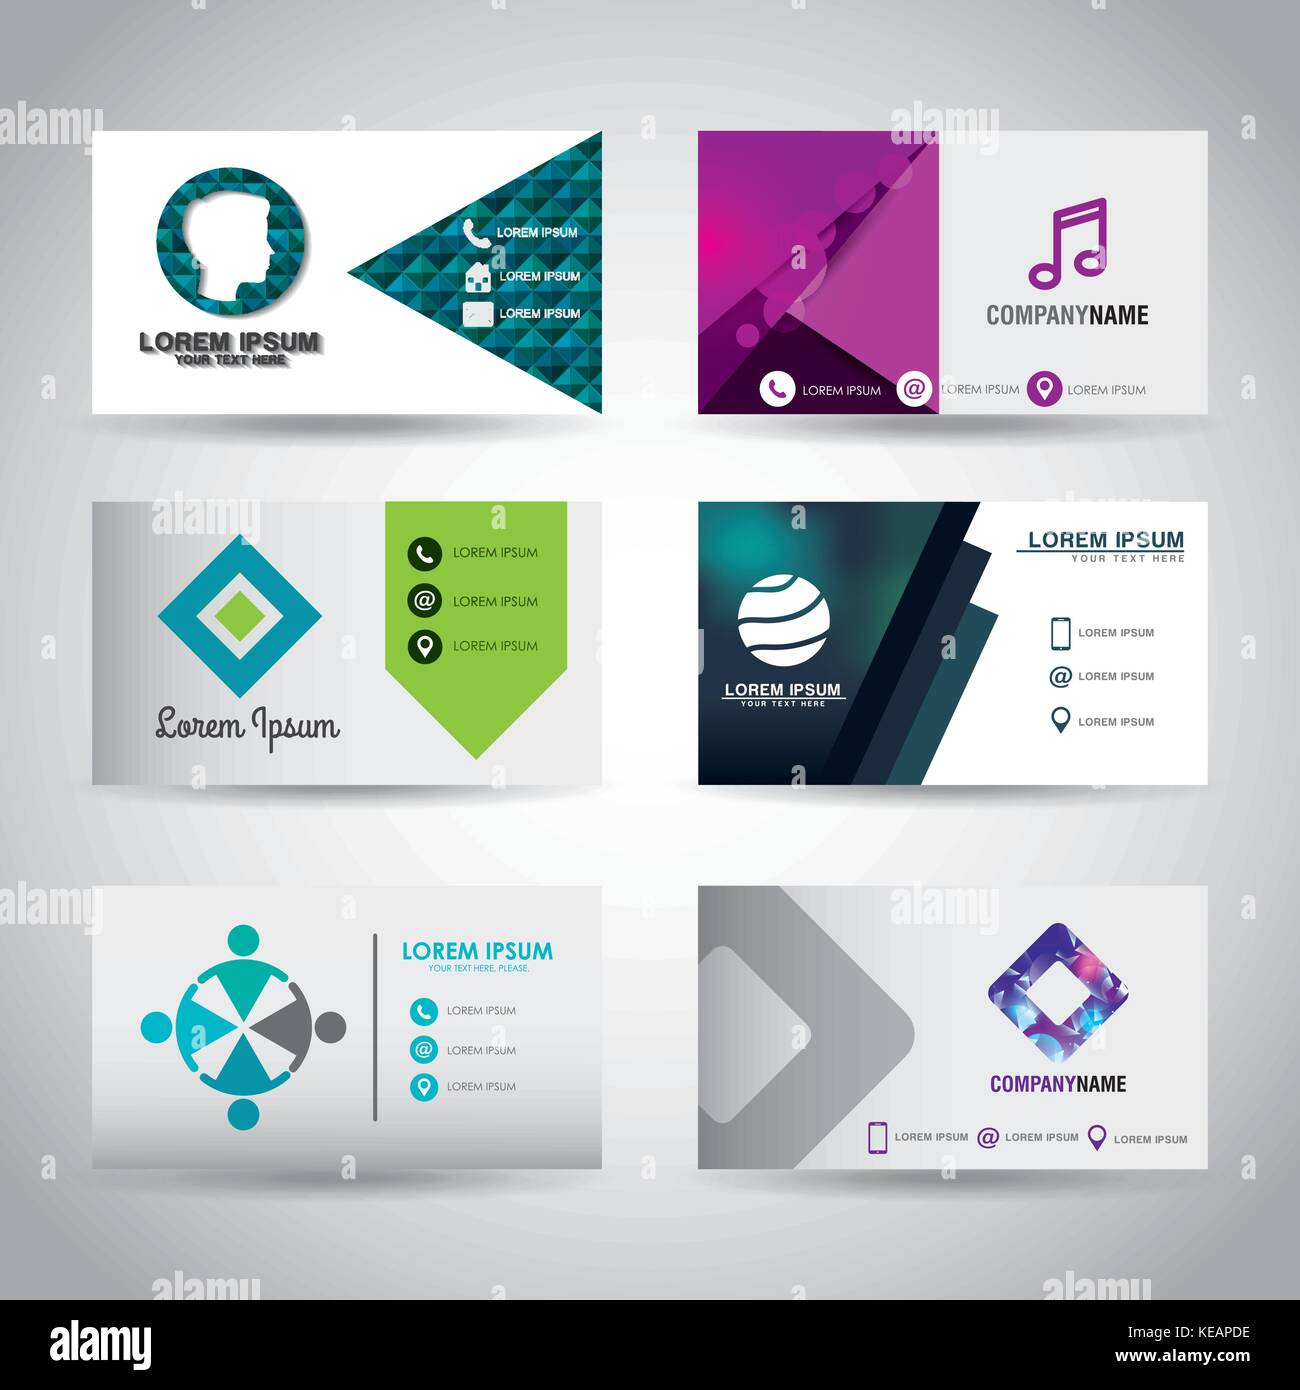 Set of themed business card presentation templates stock vector art set of themed business card presentation templates flashek Gallery